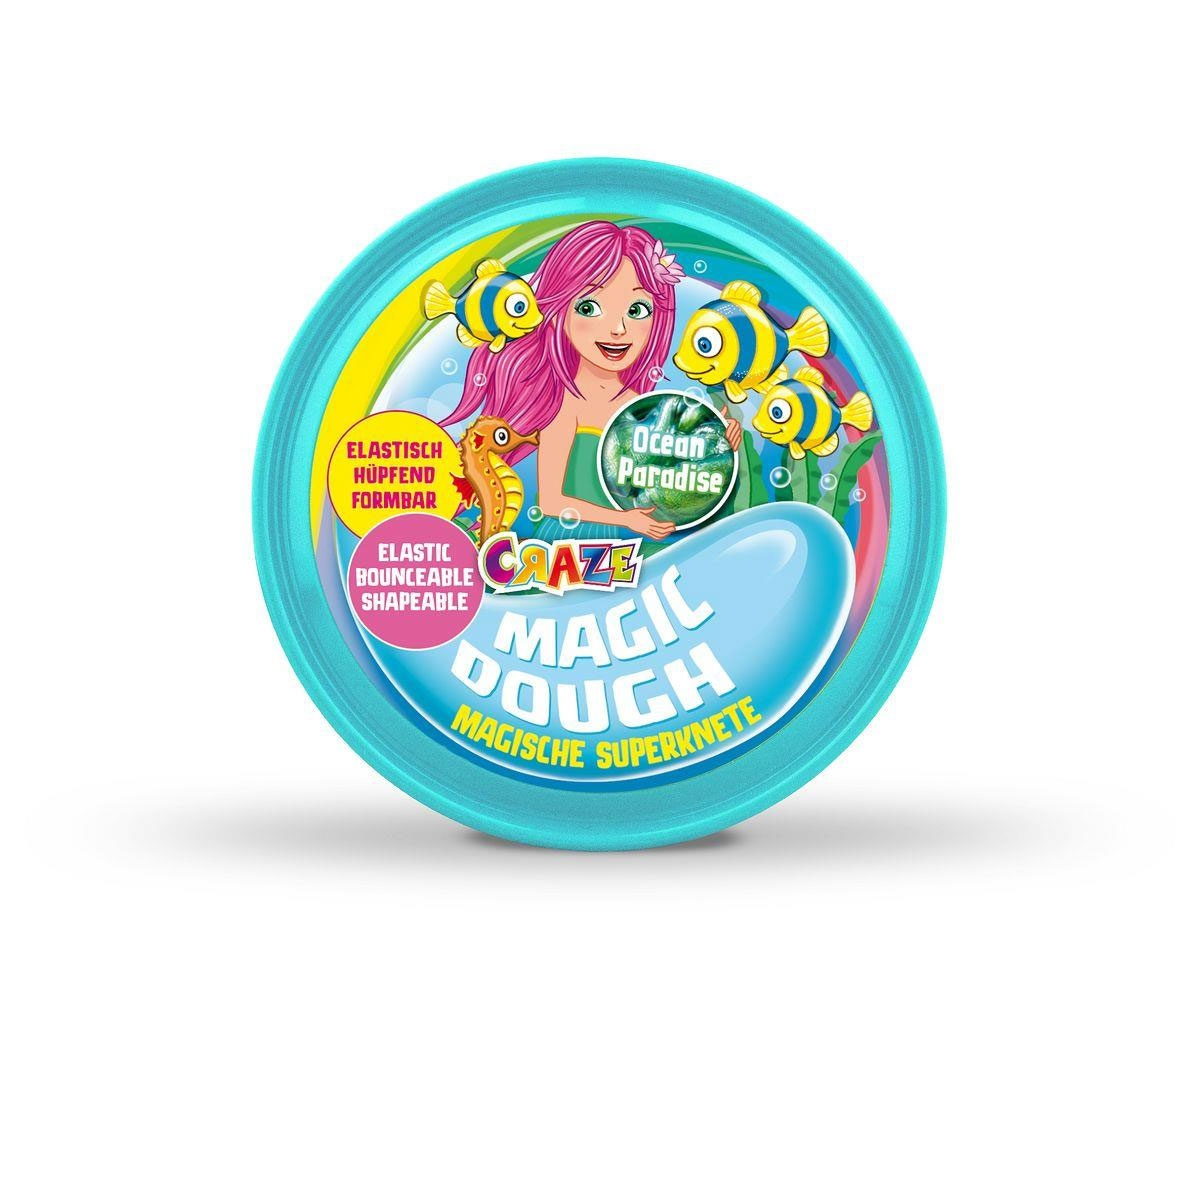 Magische Knete Magic Dough Mermaid Meerjungfrau von Craze